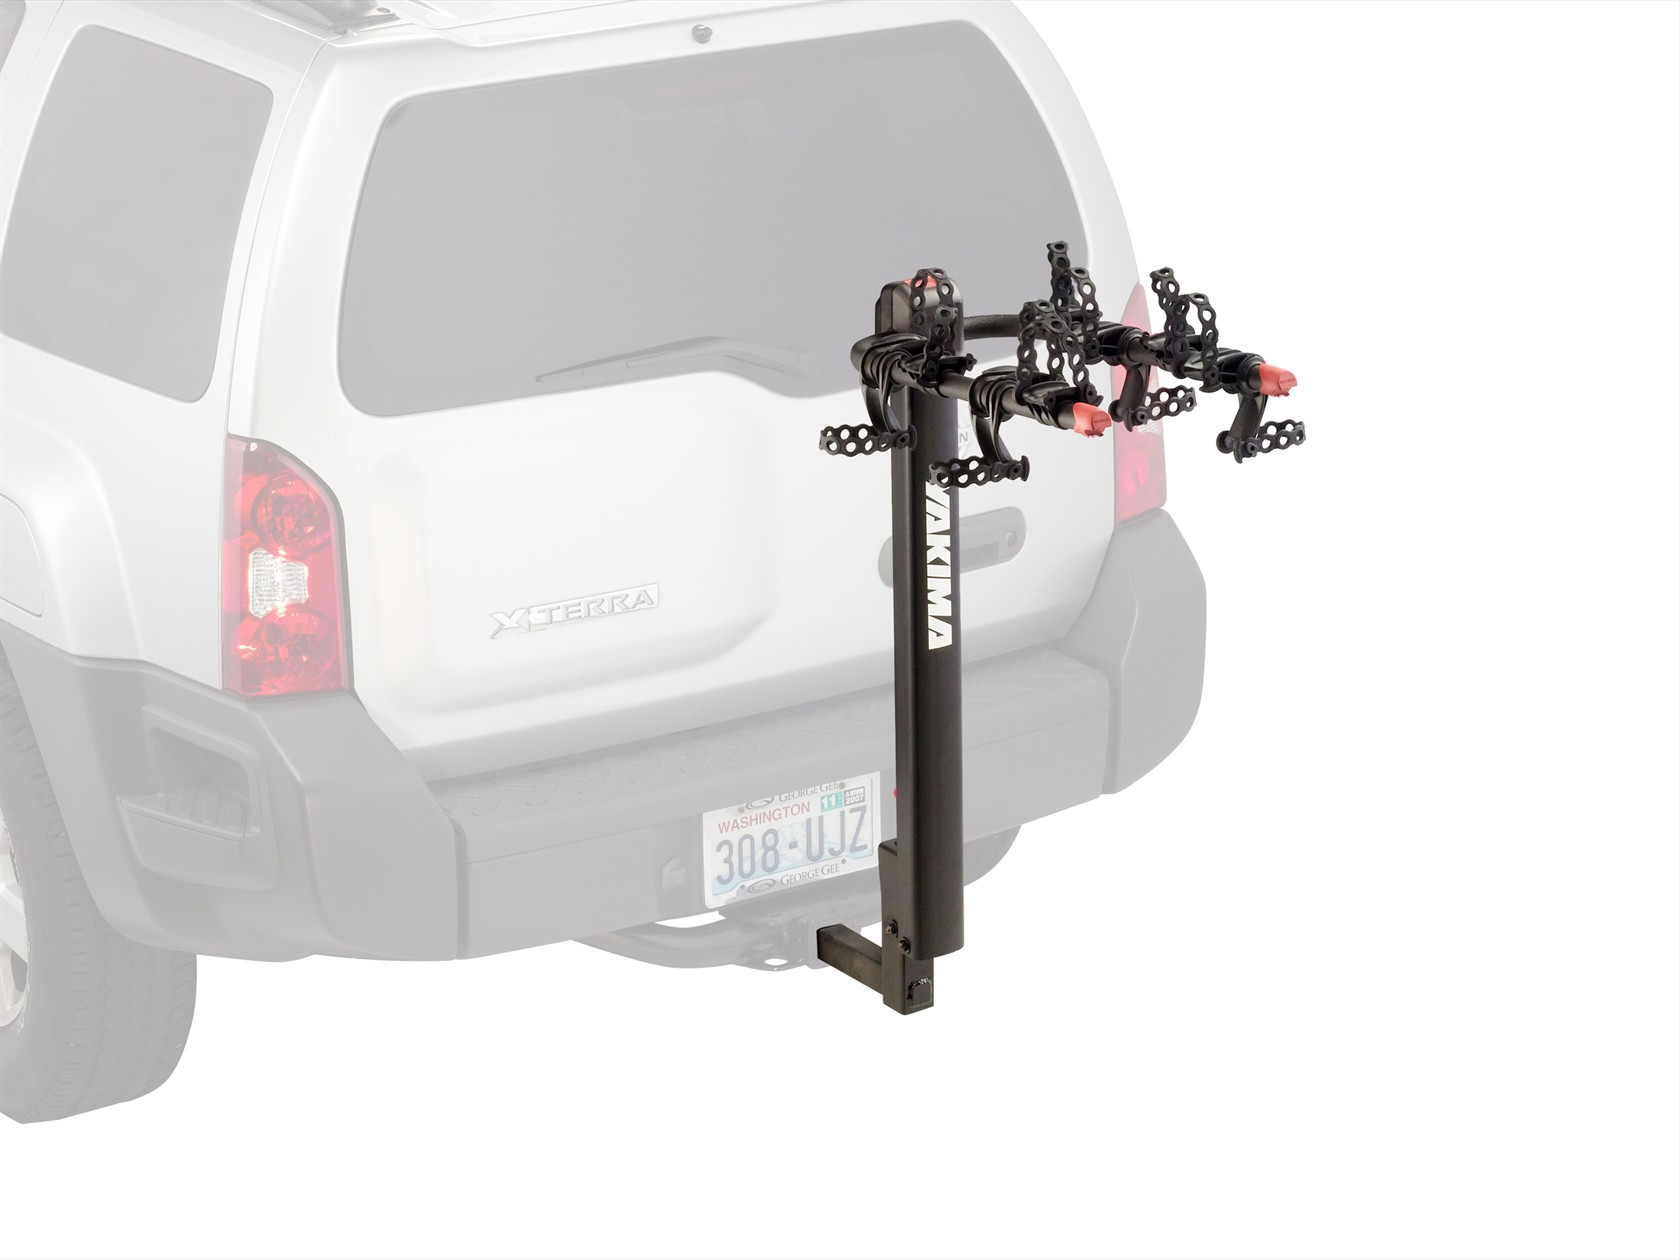 Yakima 8002424 DoubleDown 4 Bike Rack